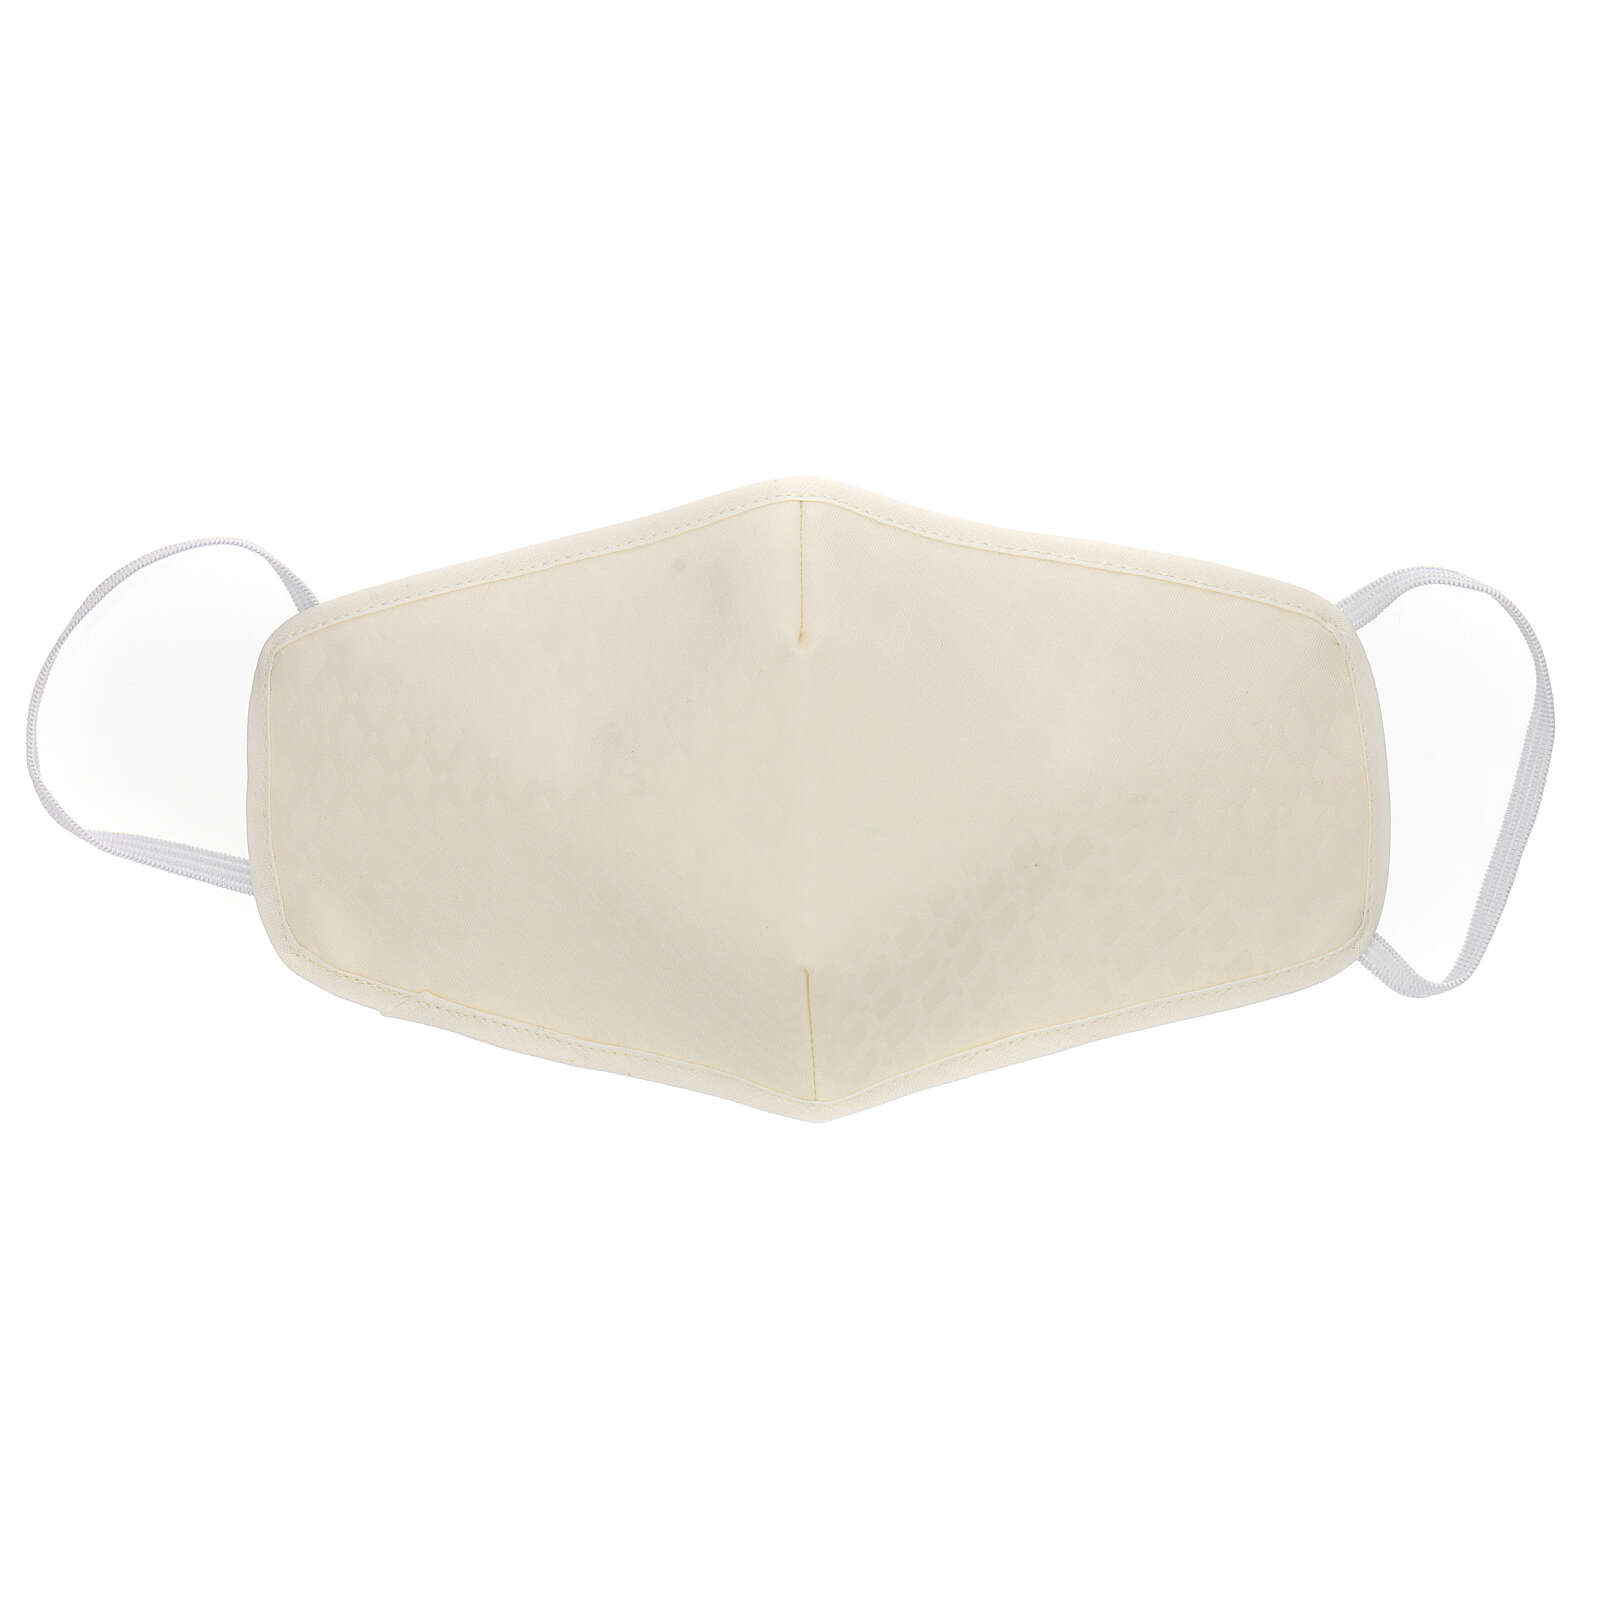 Fabric reusable face mask with ivory edge 3